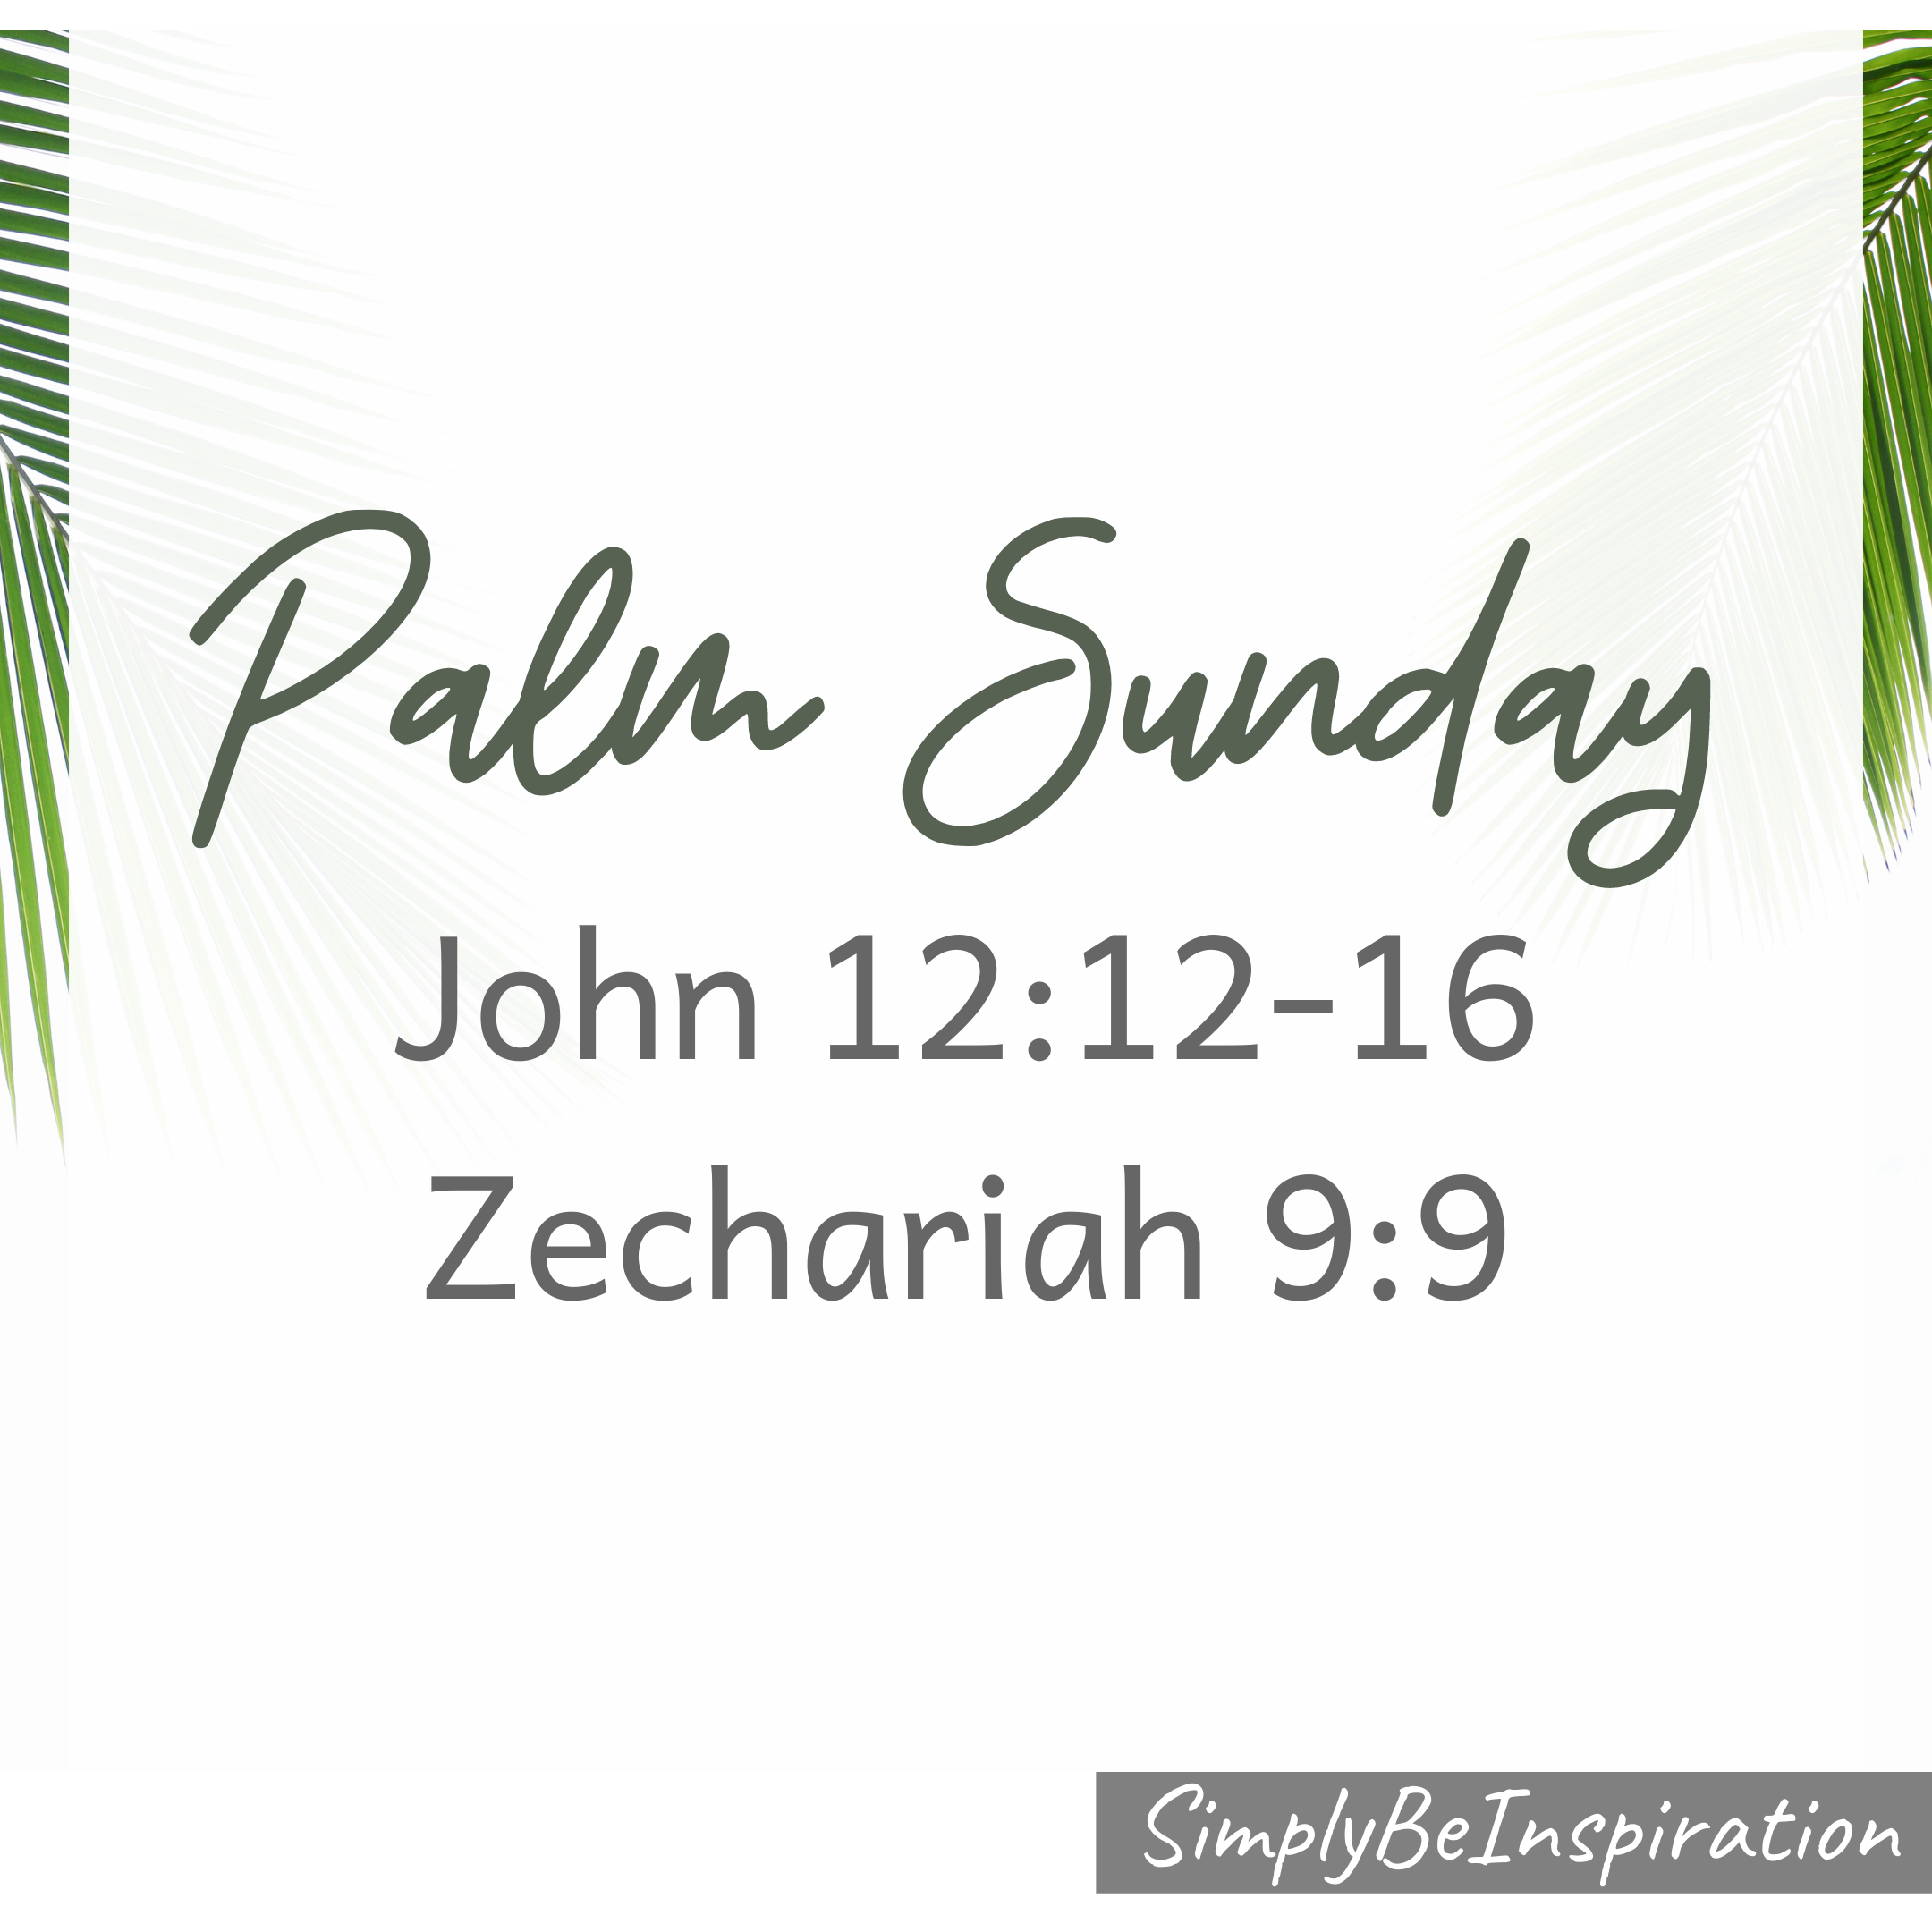 Palm Sunday John 12:12-16; Zechariah 9:9